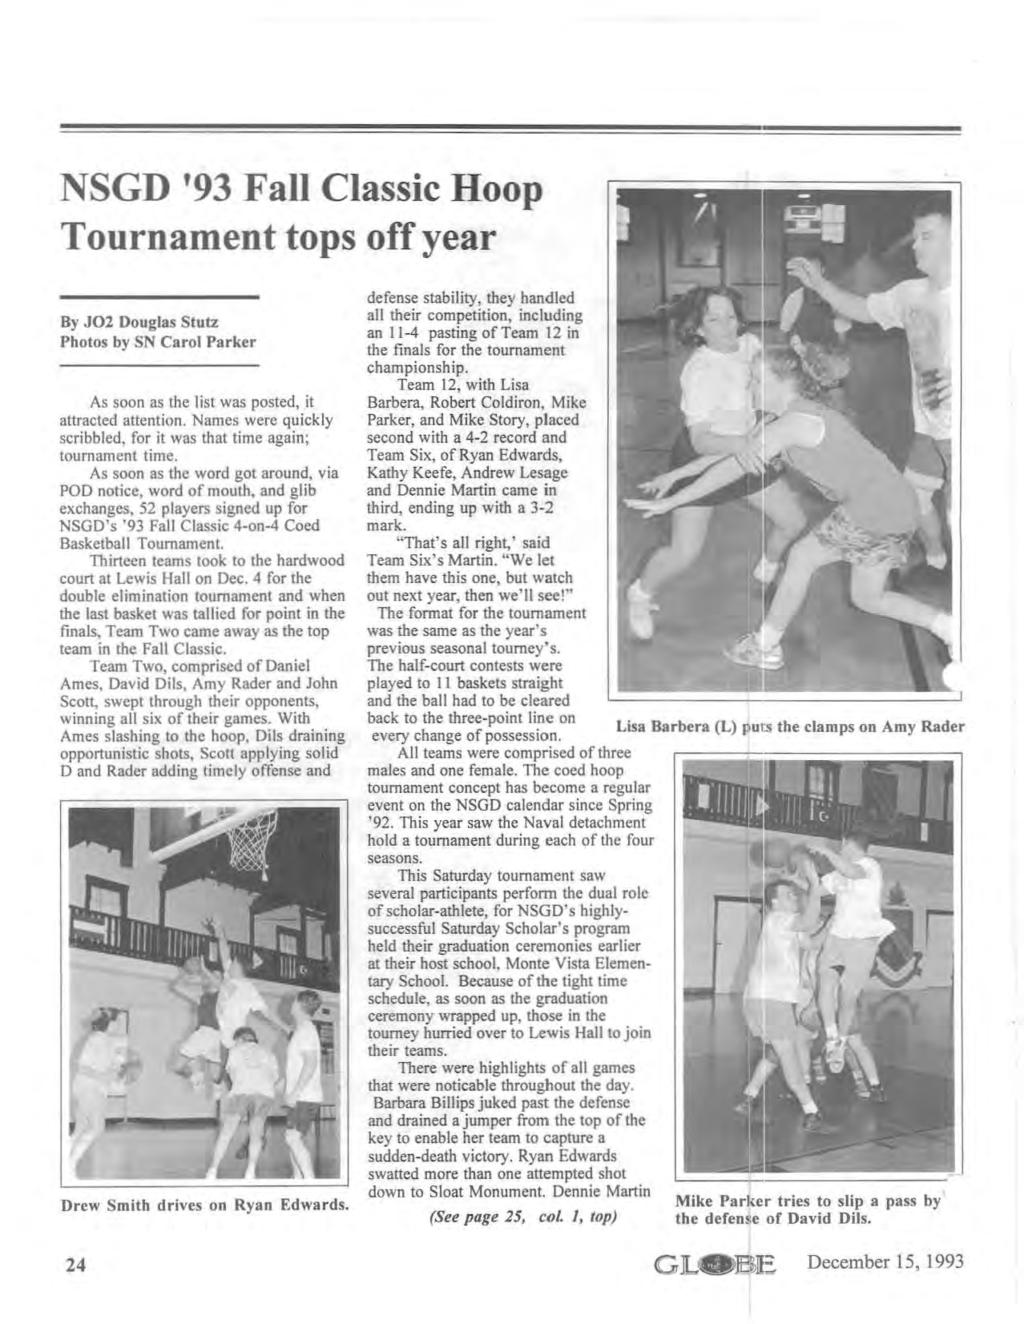 NSGD '93 Fall Classic Hoop Tournament tops off year By J02 Douglas Stutz Photos by SN Carol Parker As soon as the list was posted, it attracted attention.